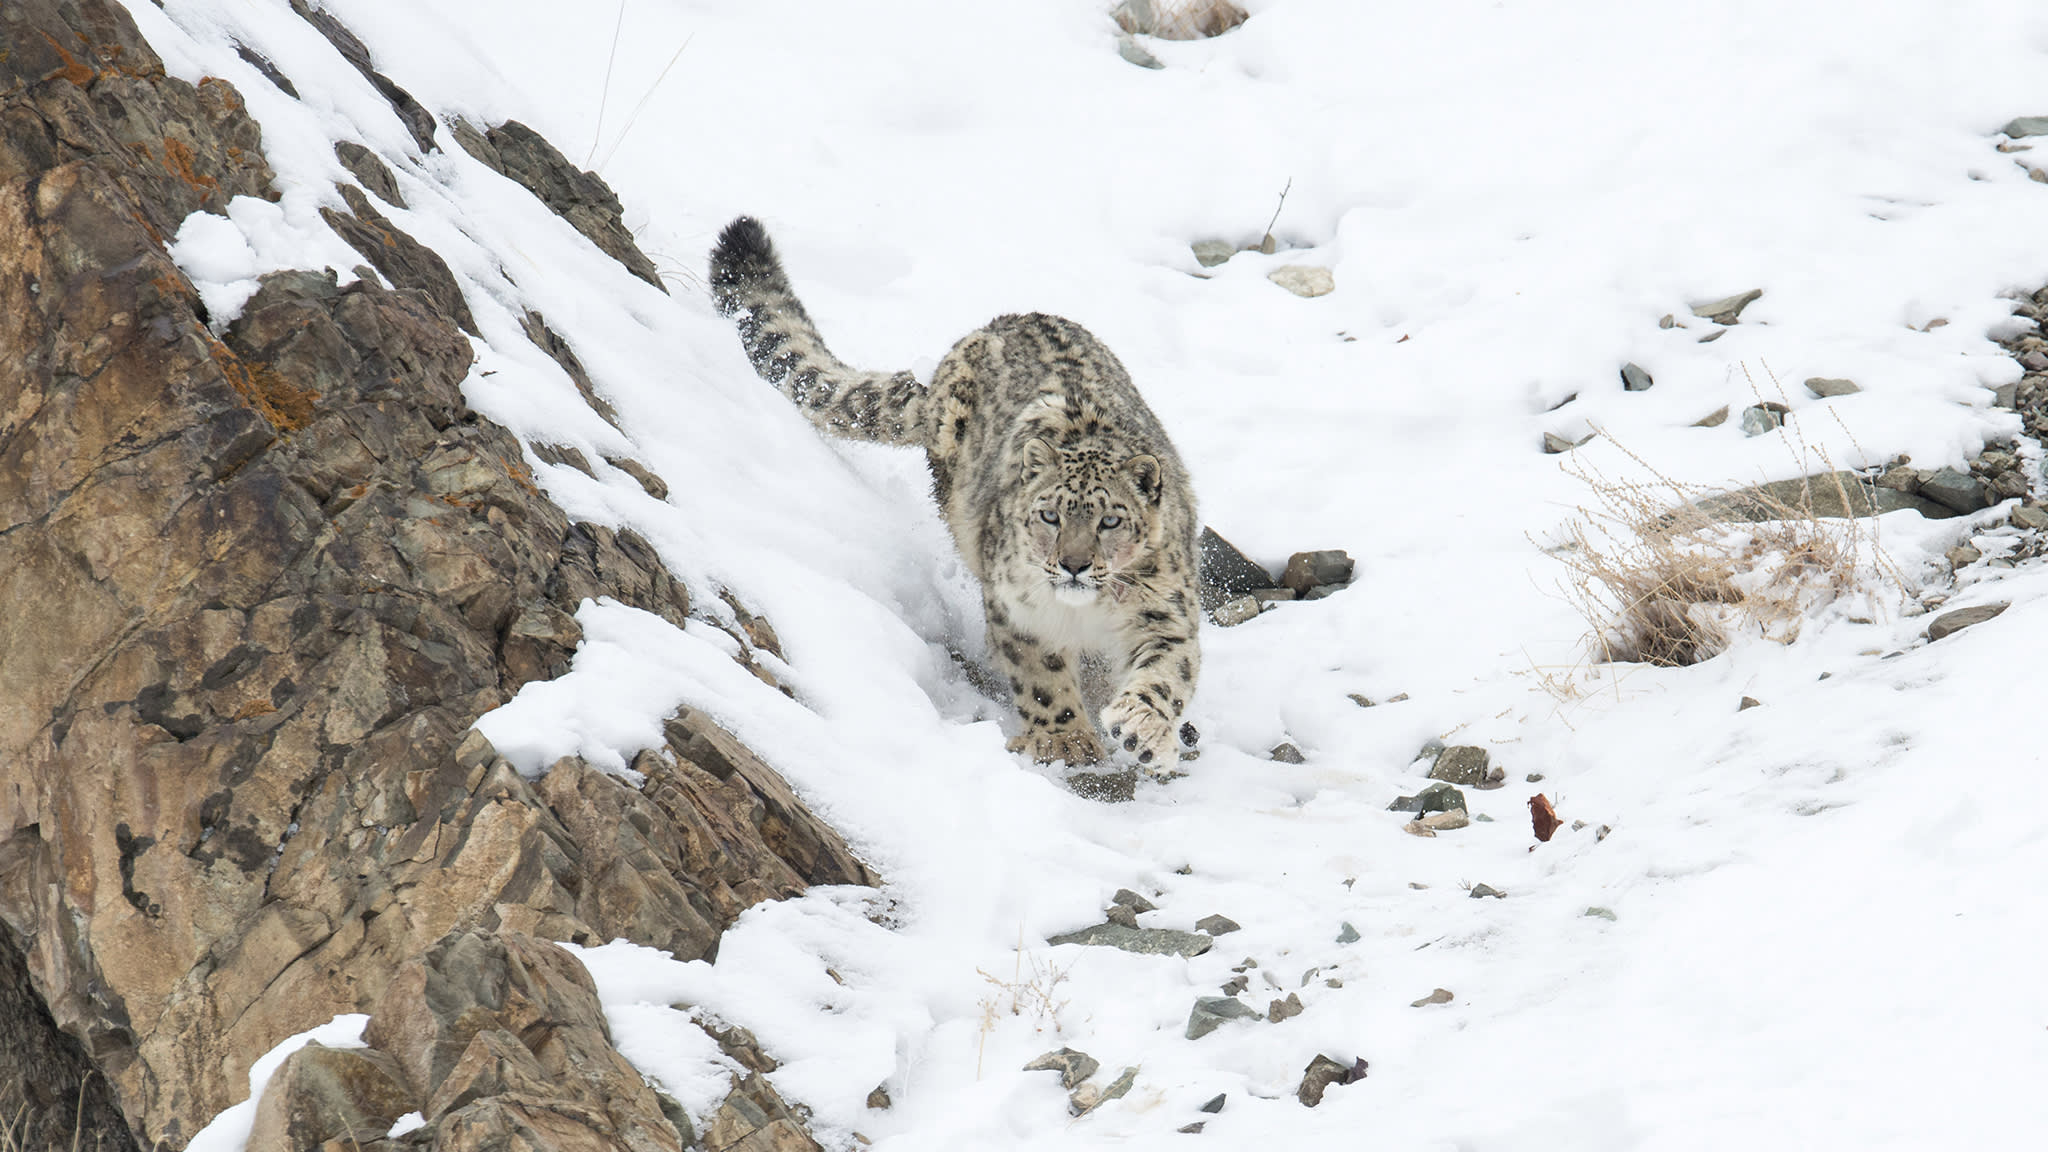 A glimpse of the 'grey ghost': spotting snow leopards in Ladakh